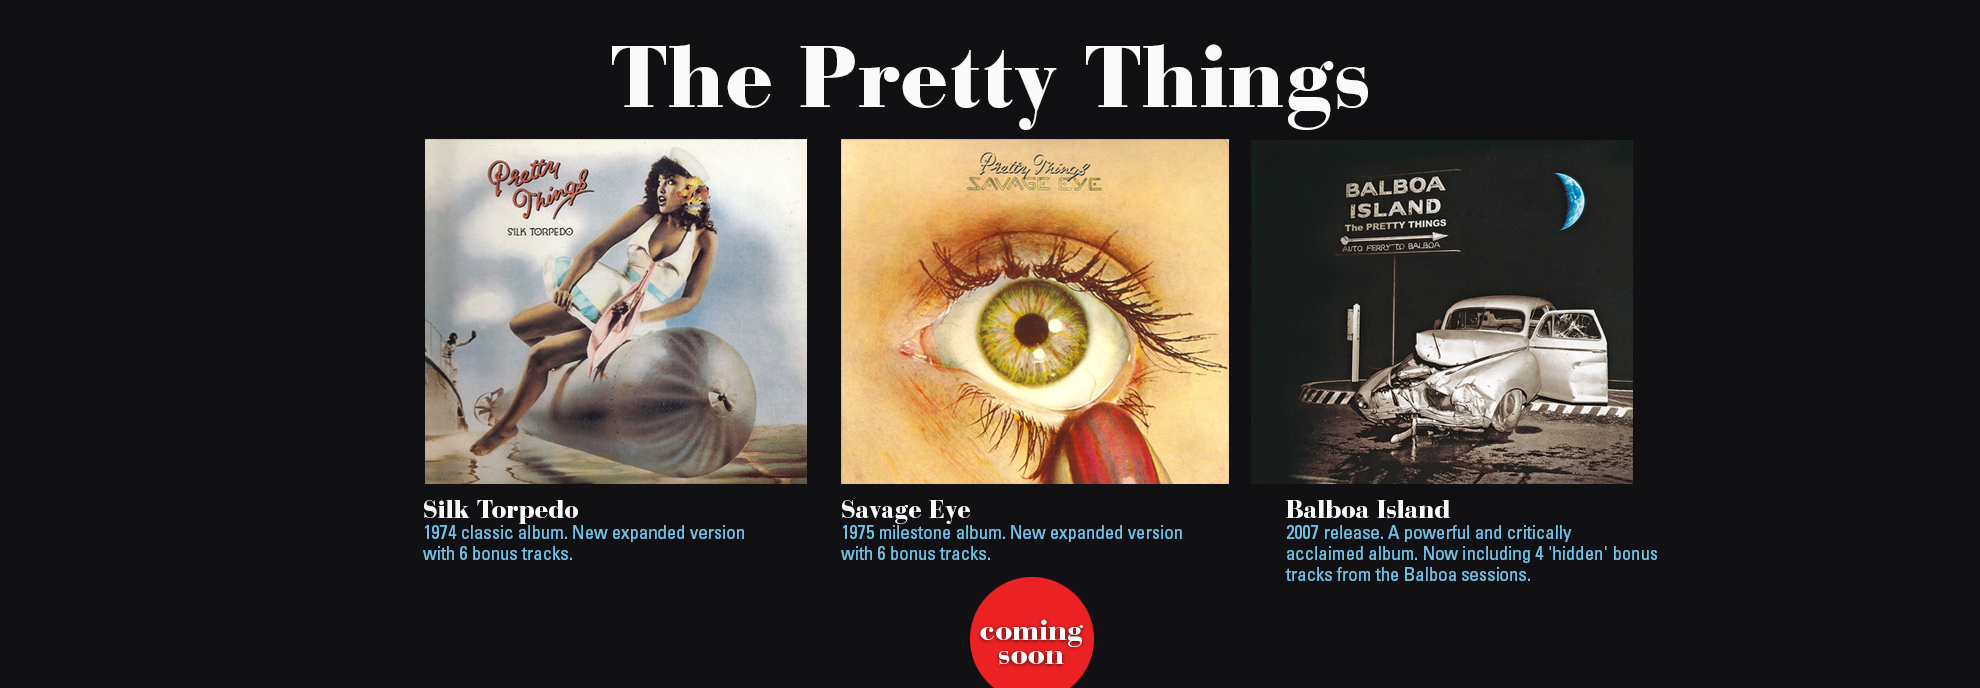 Pretty-Things-composite-new-banner-size-Recovered